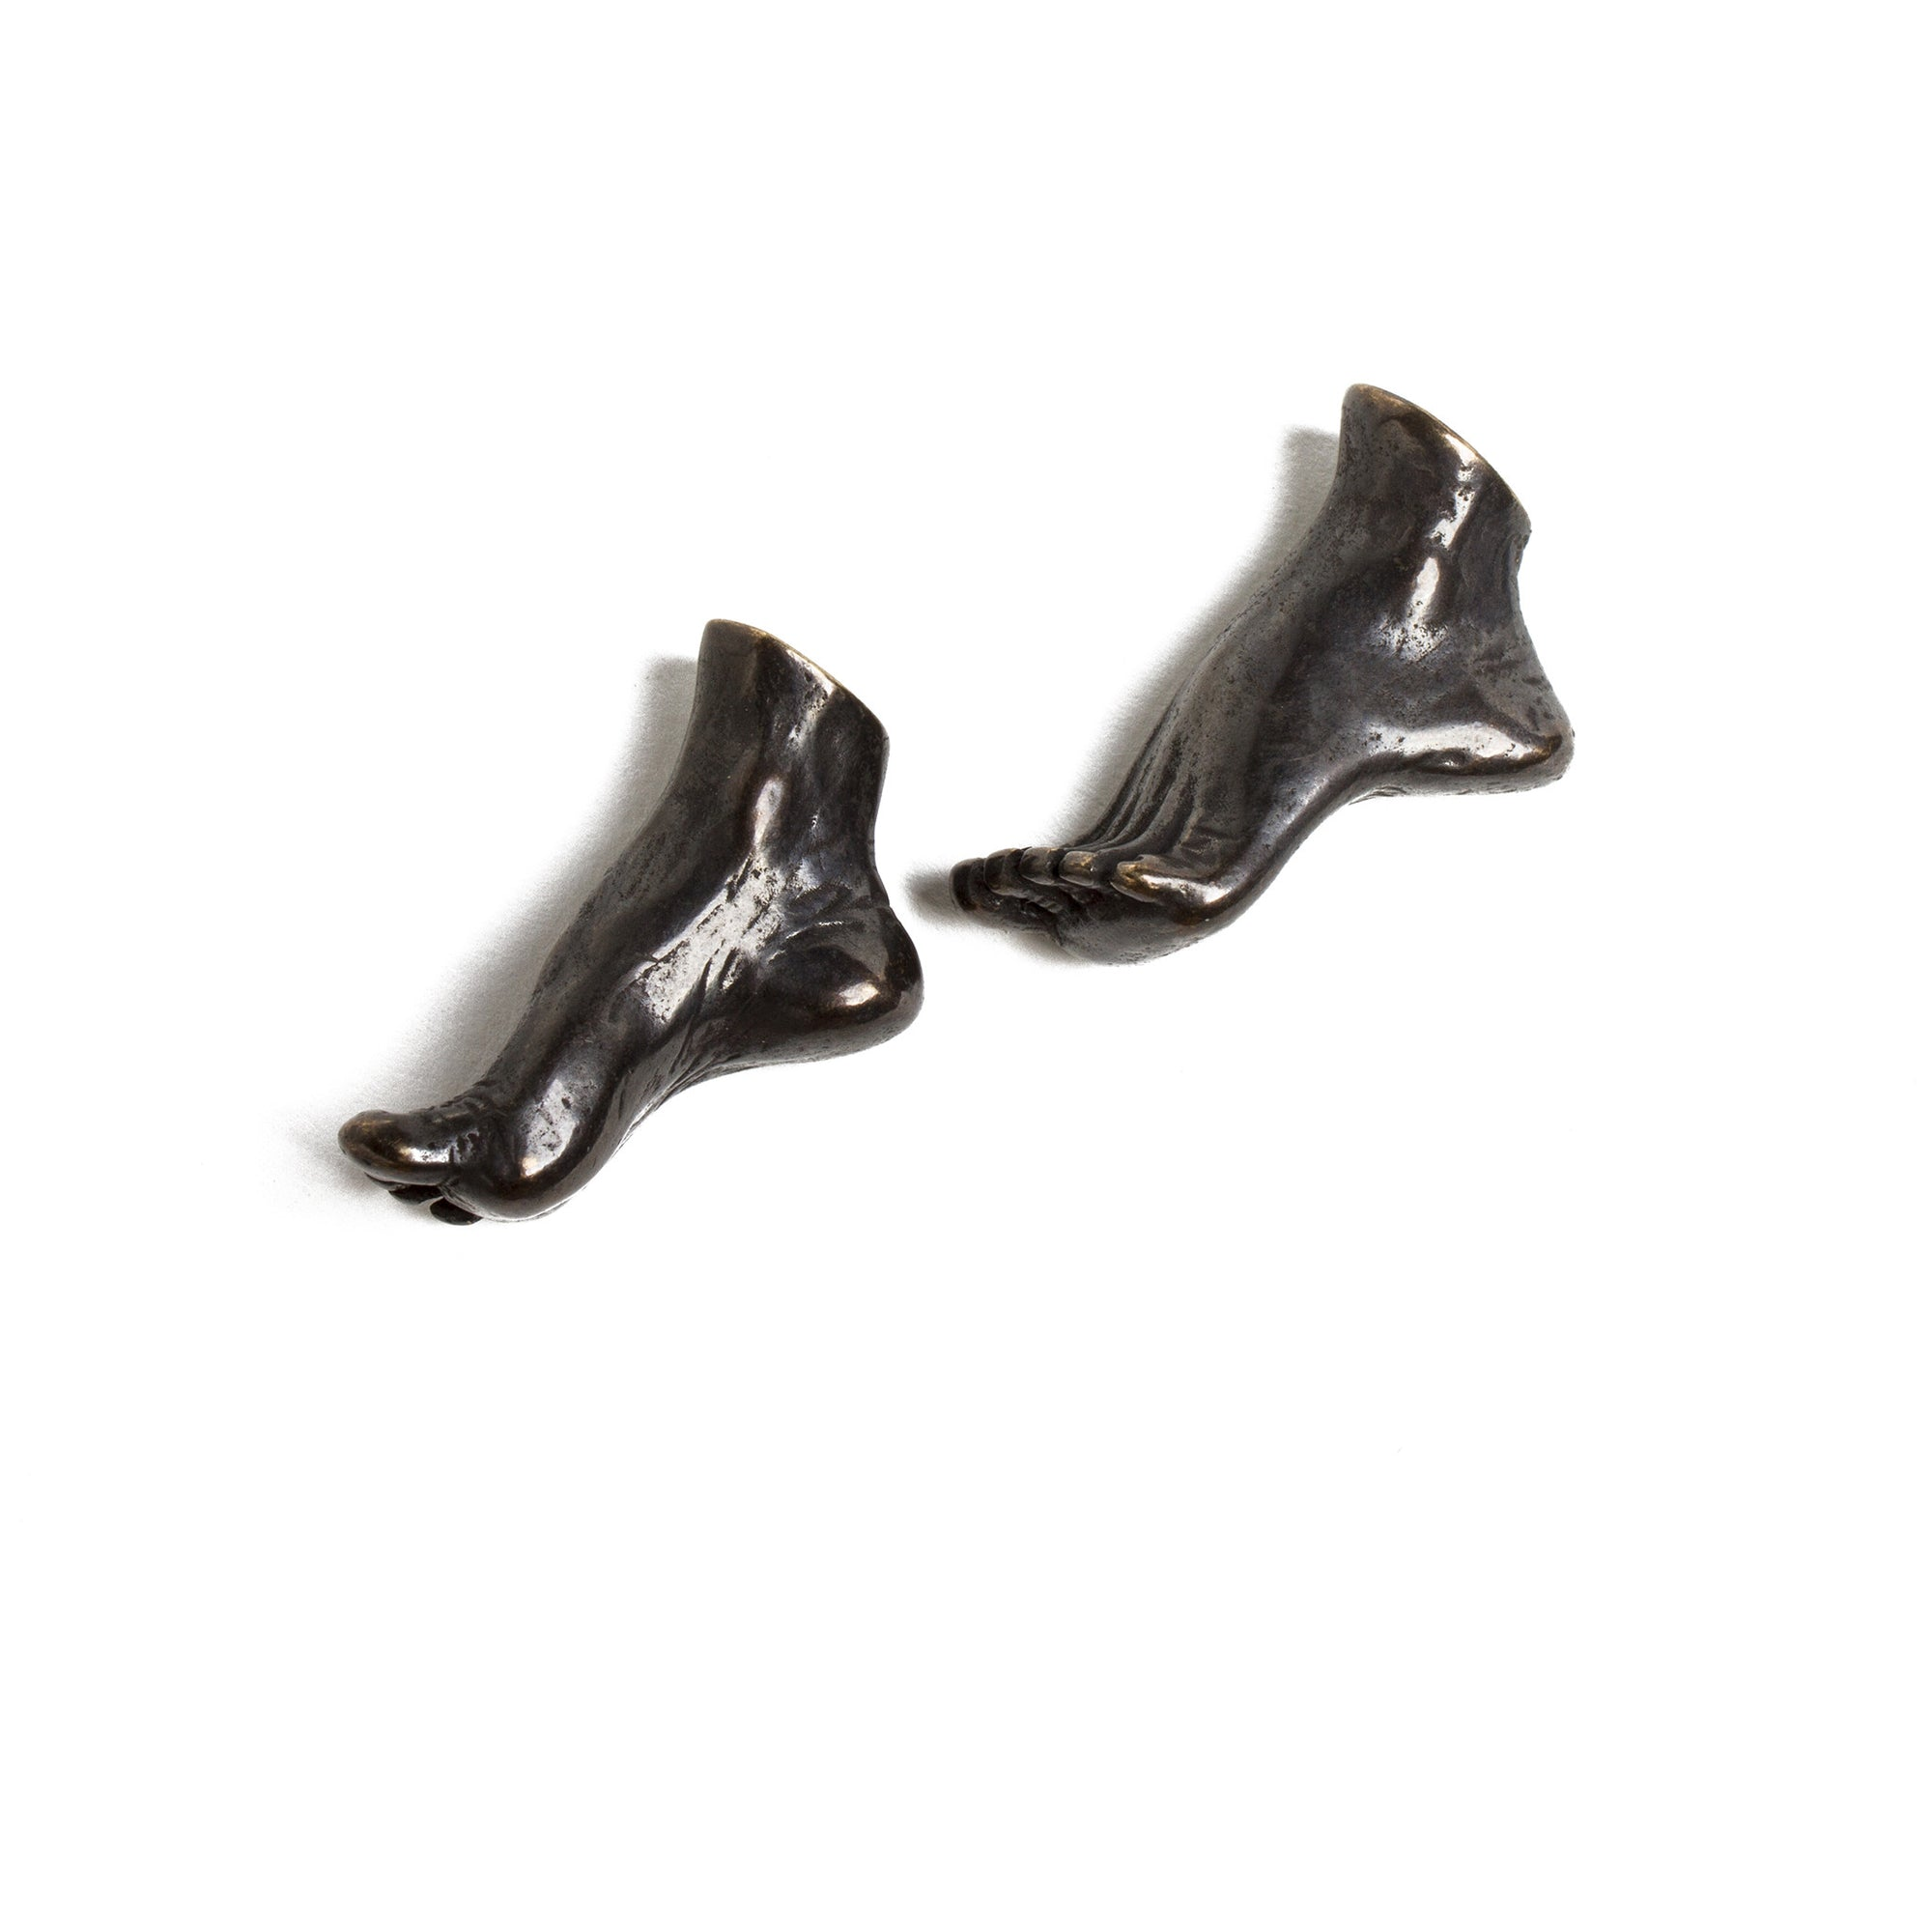 Pair of Miniature cast Bronze Arched Feet | Getty Store